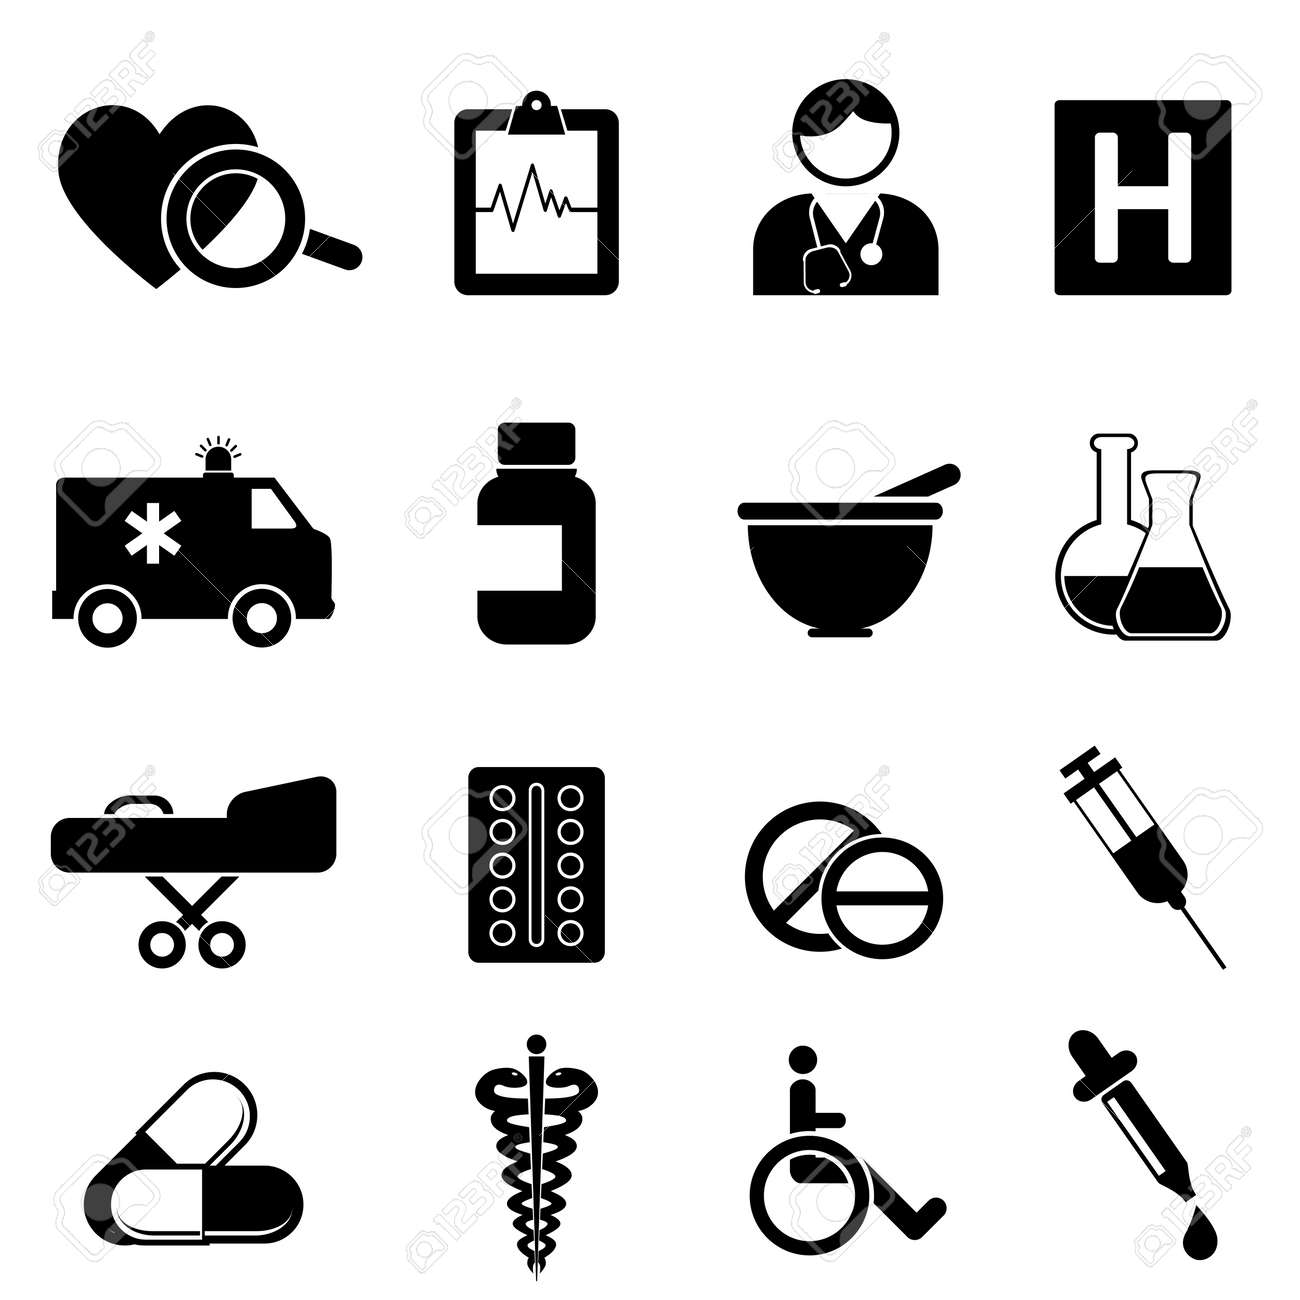 Health and medical icon set Stock Vector - 15925486